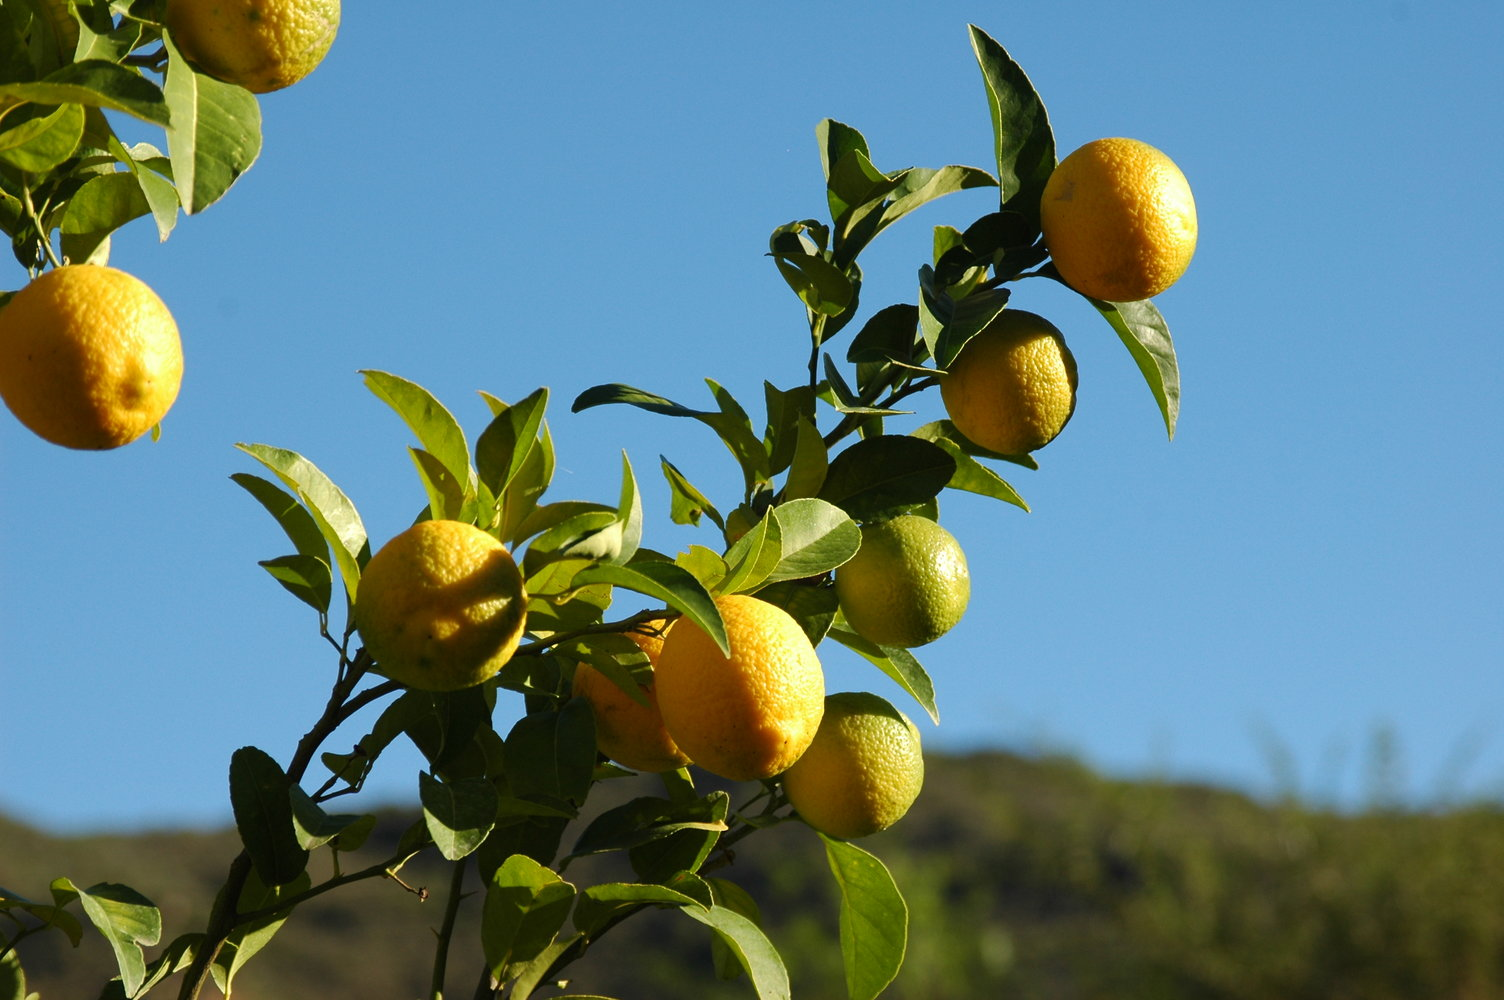 Lemon tree fruit pictures